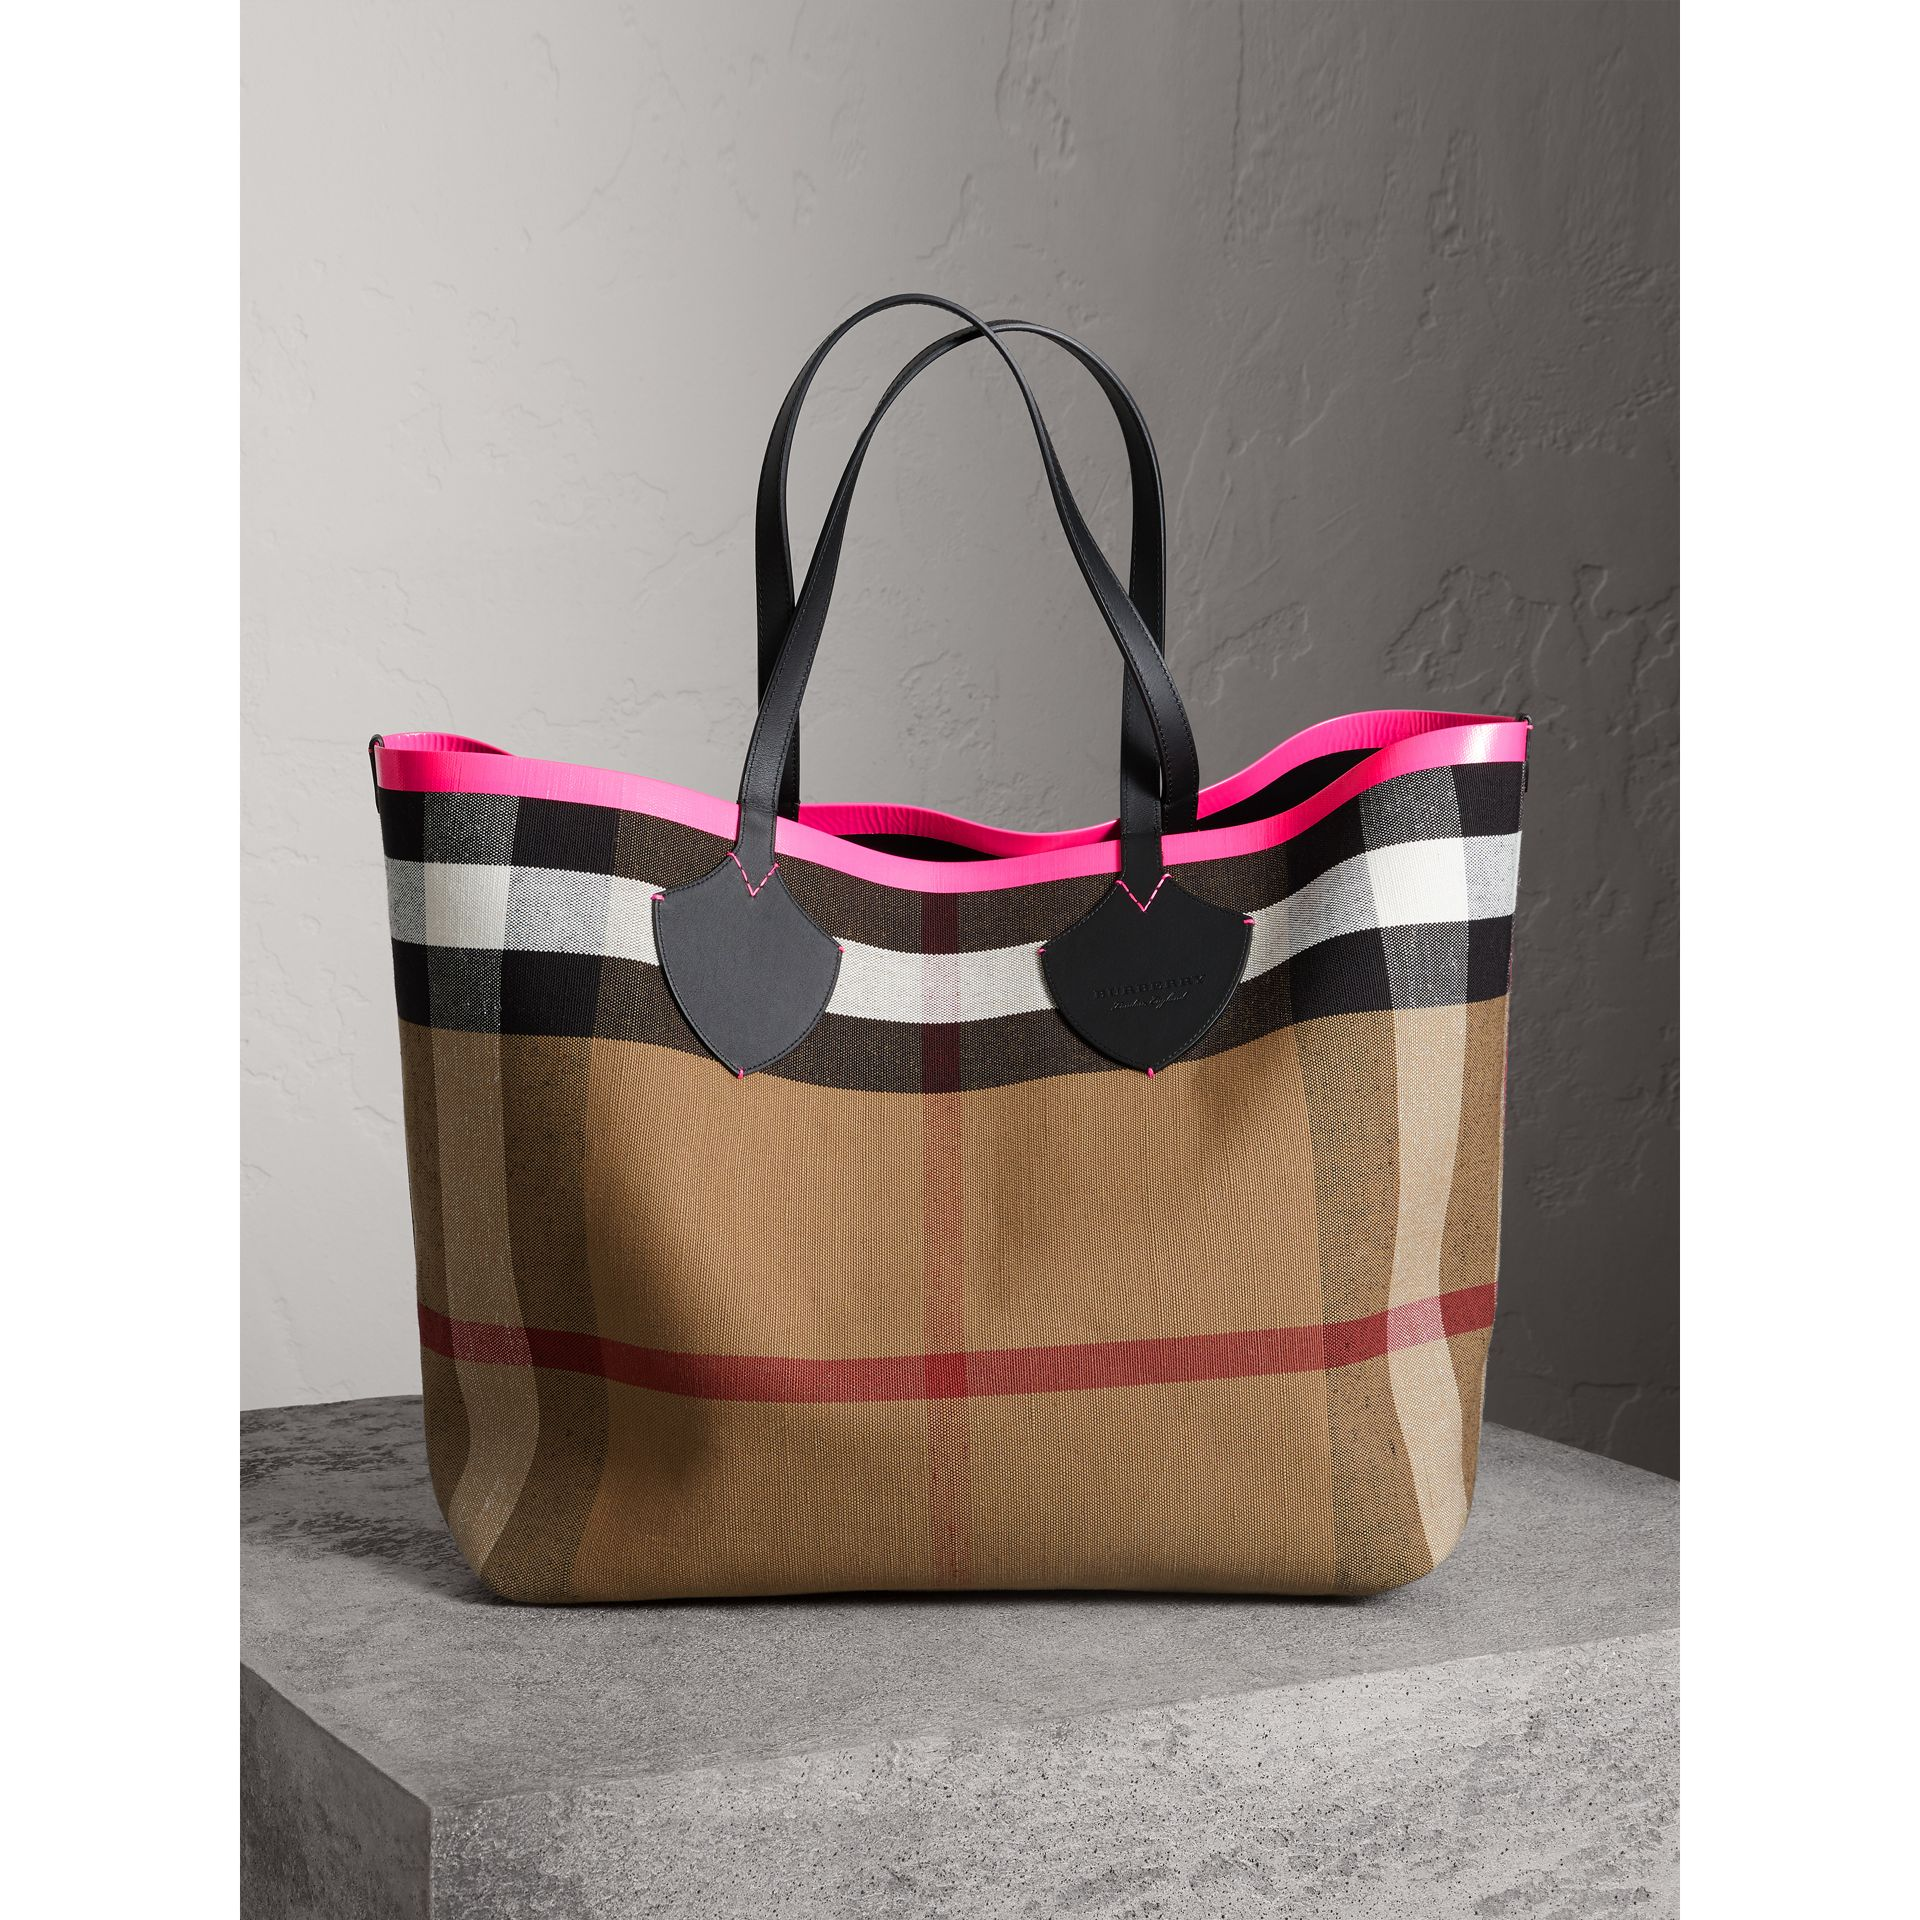 Borsa tote The Giant reversibile in cotone con motivo Canvas check e pelle (Nero/rosa Neon) | Burberry - immagine della galleria 0